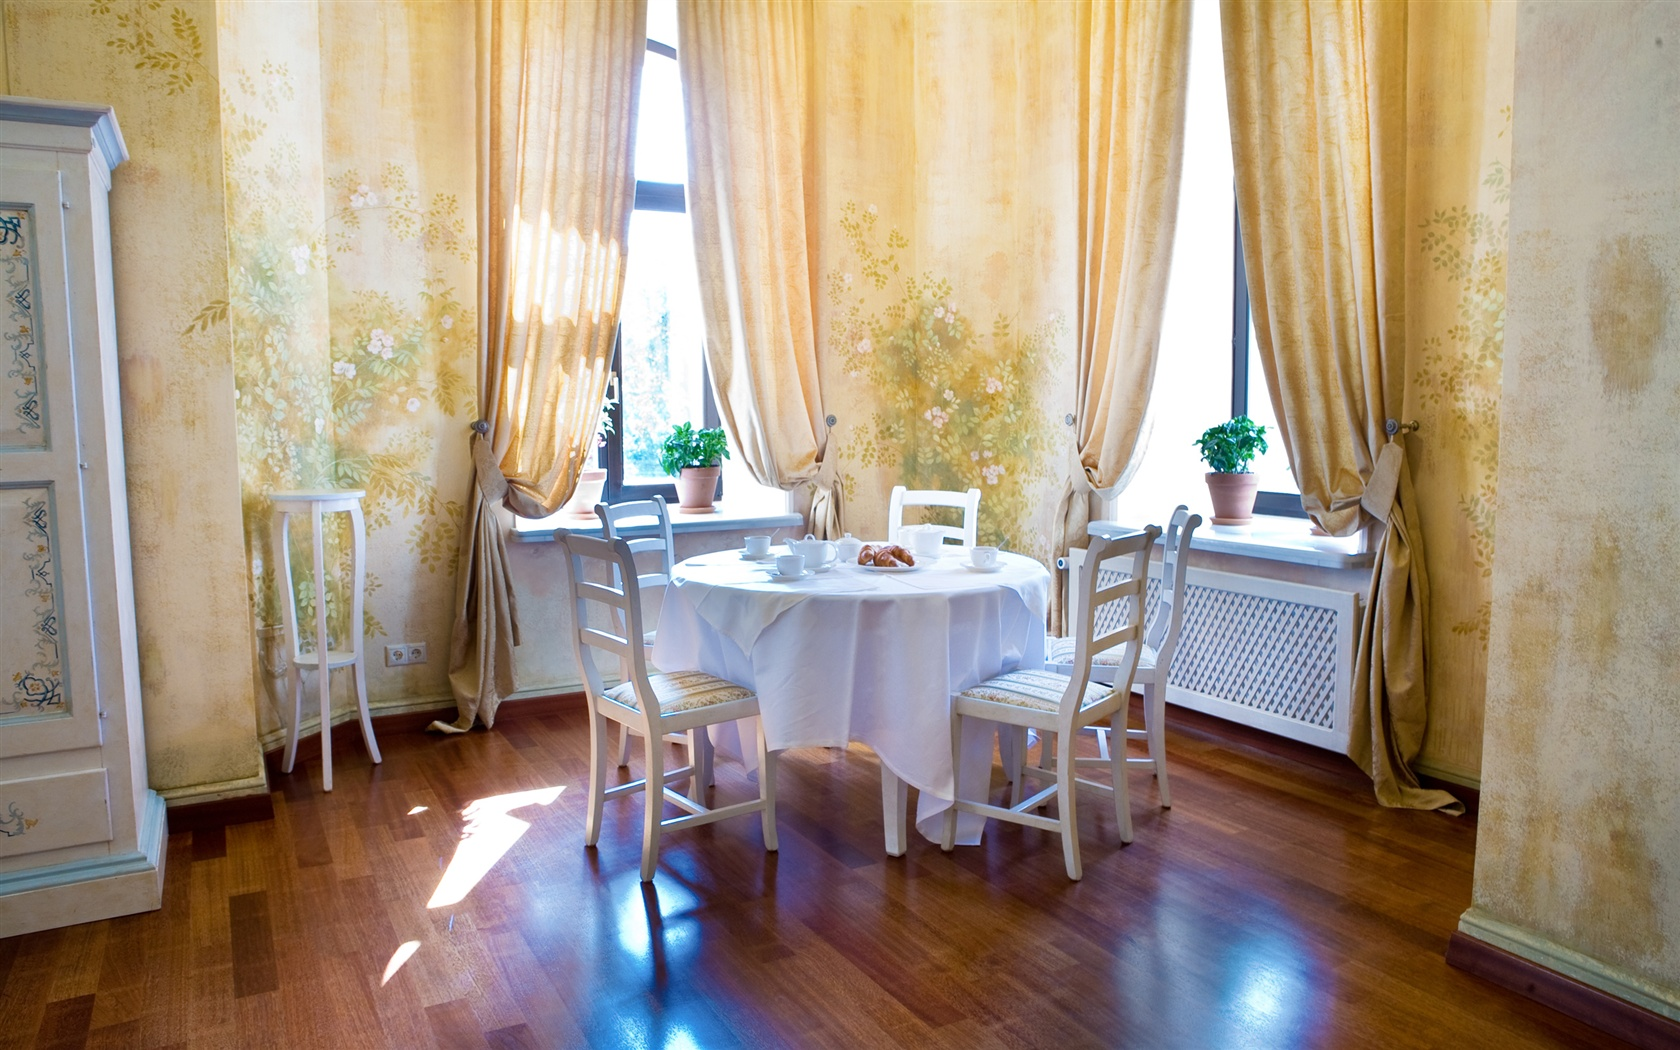 Cozy Dining Space: Wallpaper Environment Cozy Dining Room 2560x1600 HD